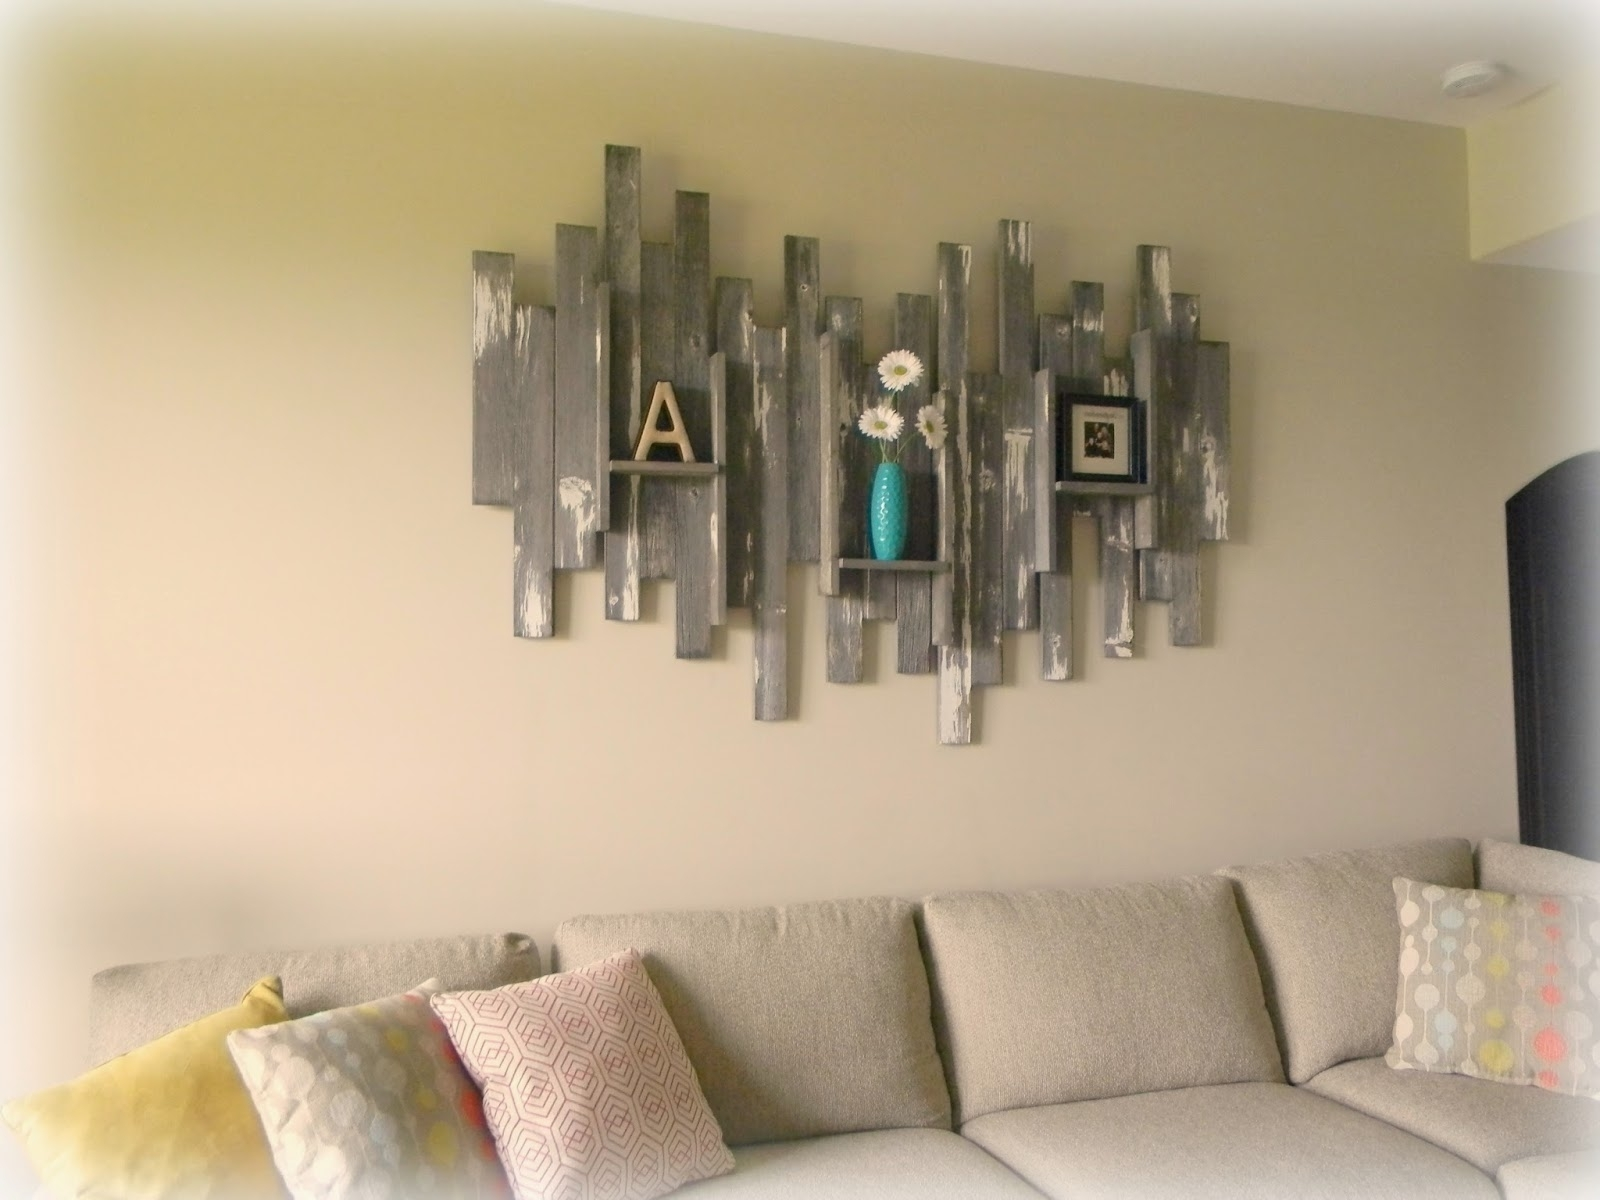 Forever Decorating Barn Wood Wall Art Basement – Home Art Decor (View 13 of 15)